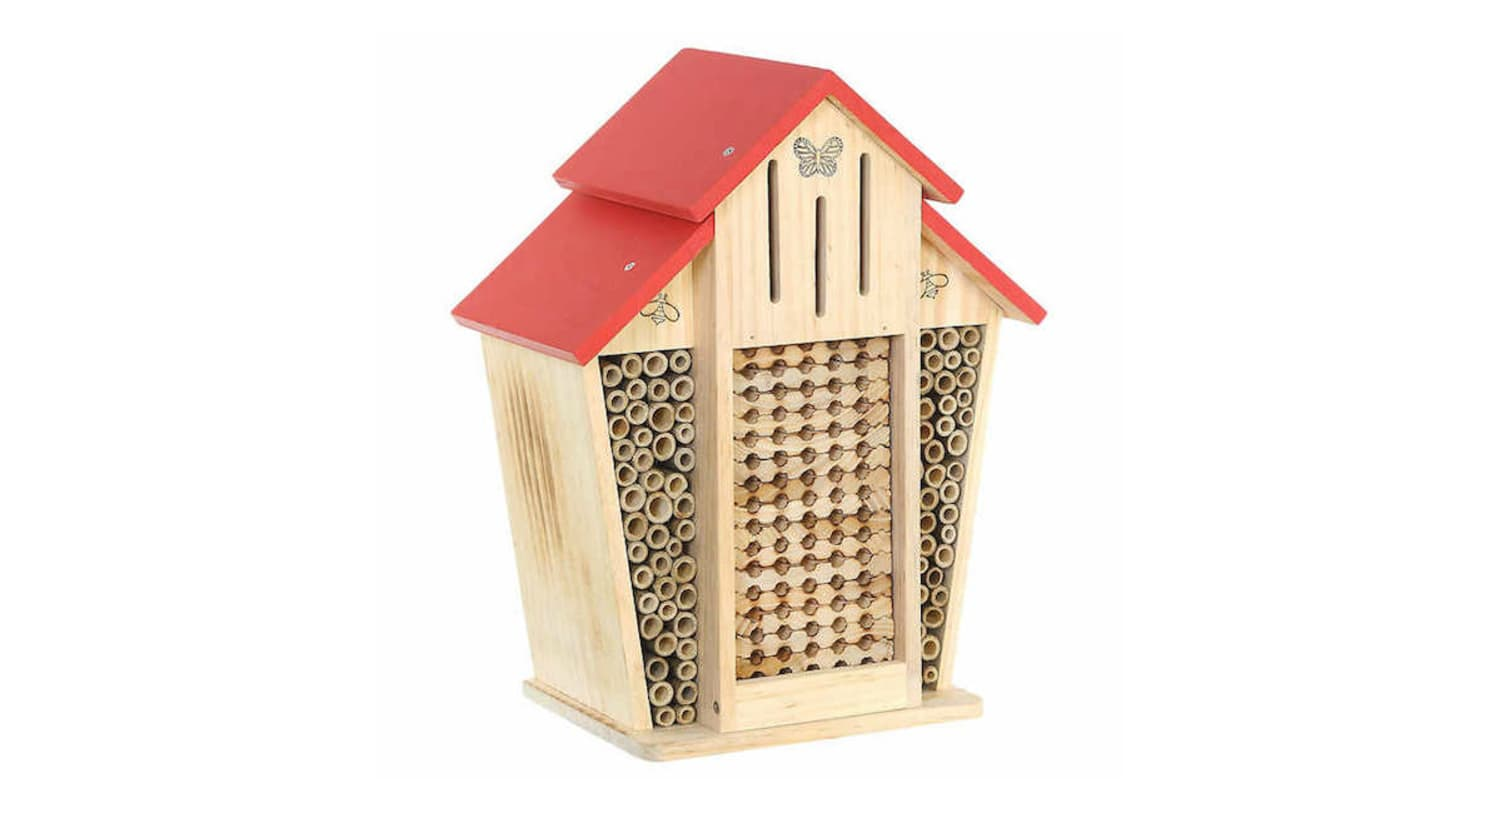 You Can Help Save the Bee Population with This Adorable Bee House From Costco